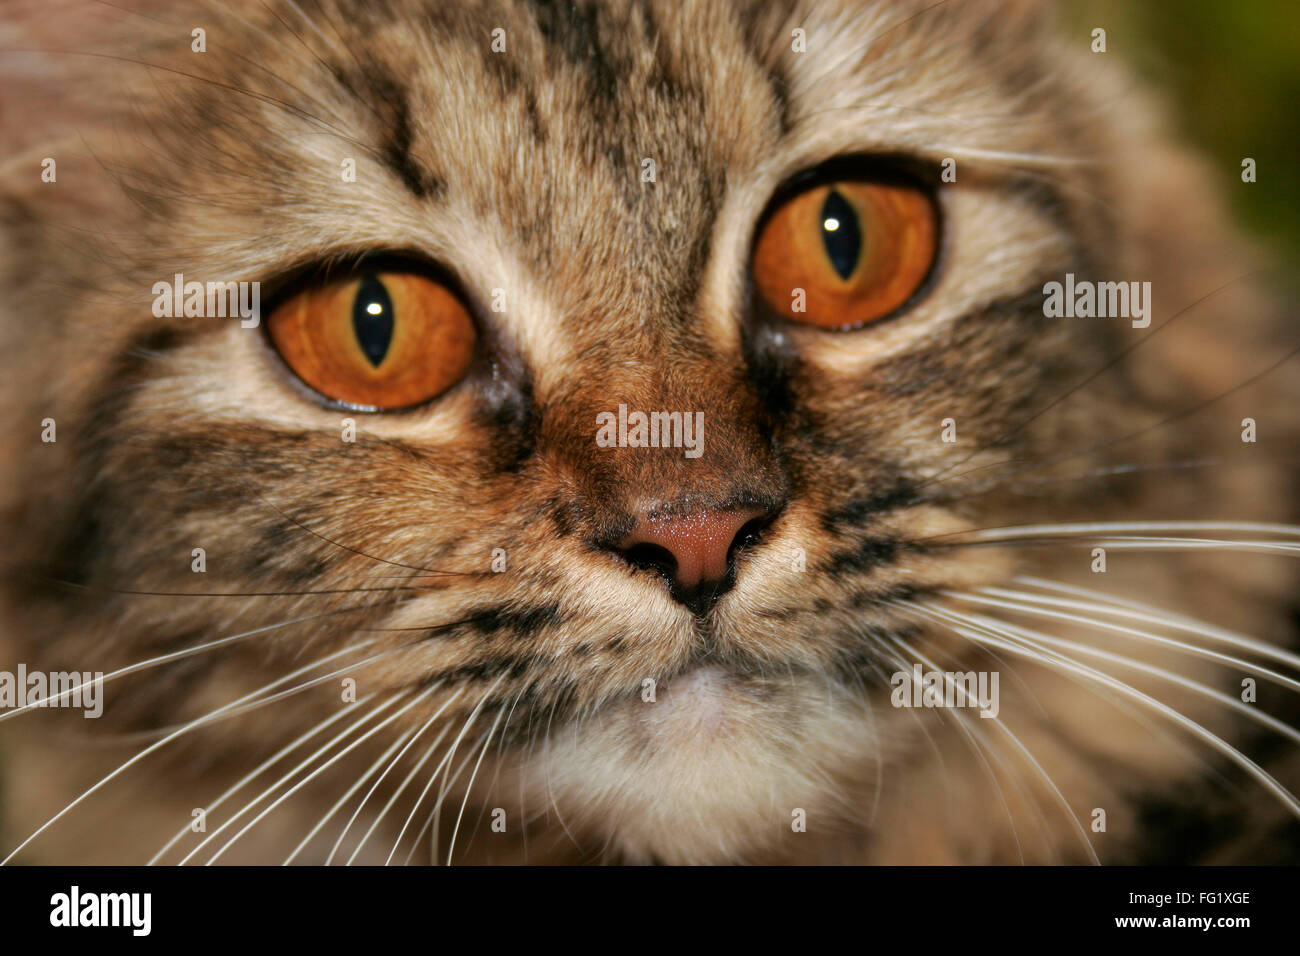 Persian cat with fierce brown eyes and black and beige fur - Stock Image